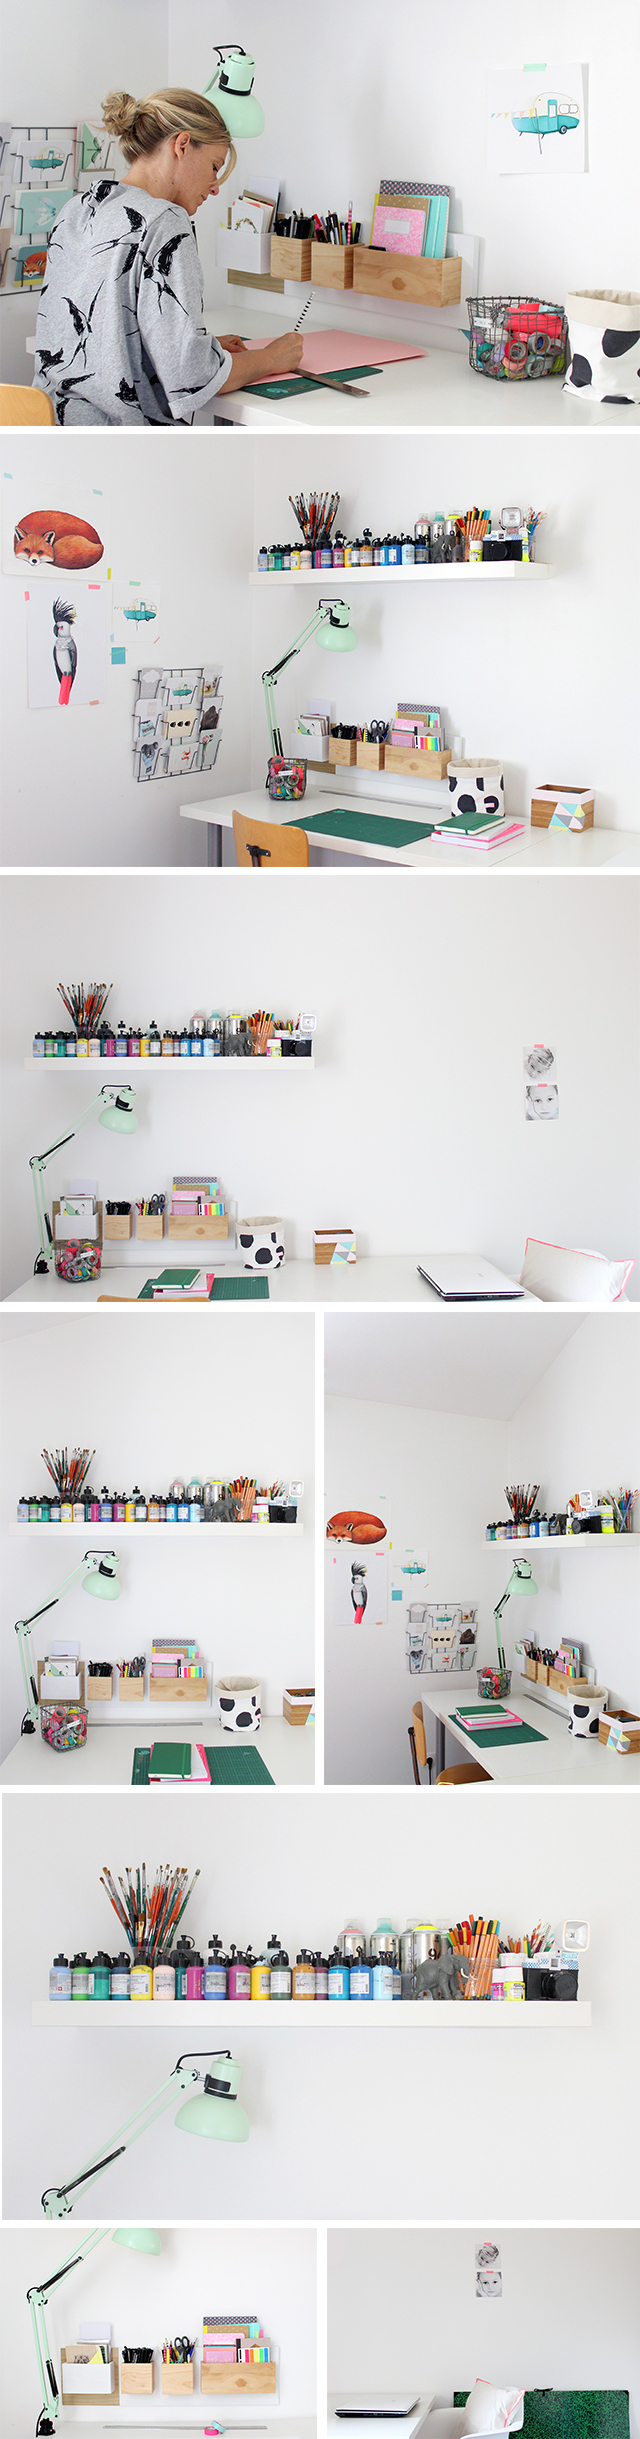 bureau-miss-etc-home-challenge-elephant-in-the-room